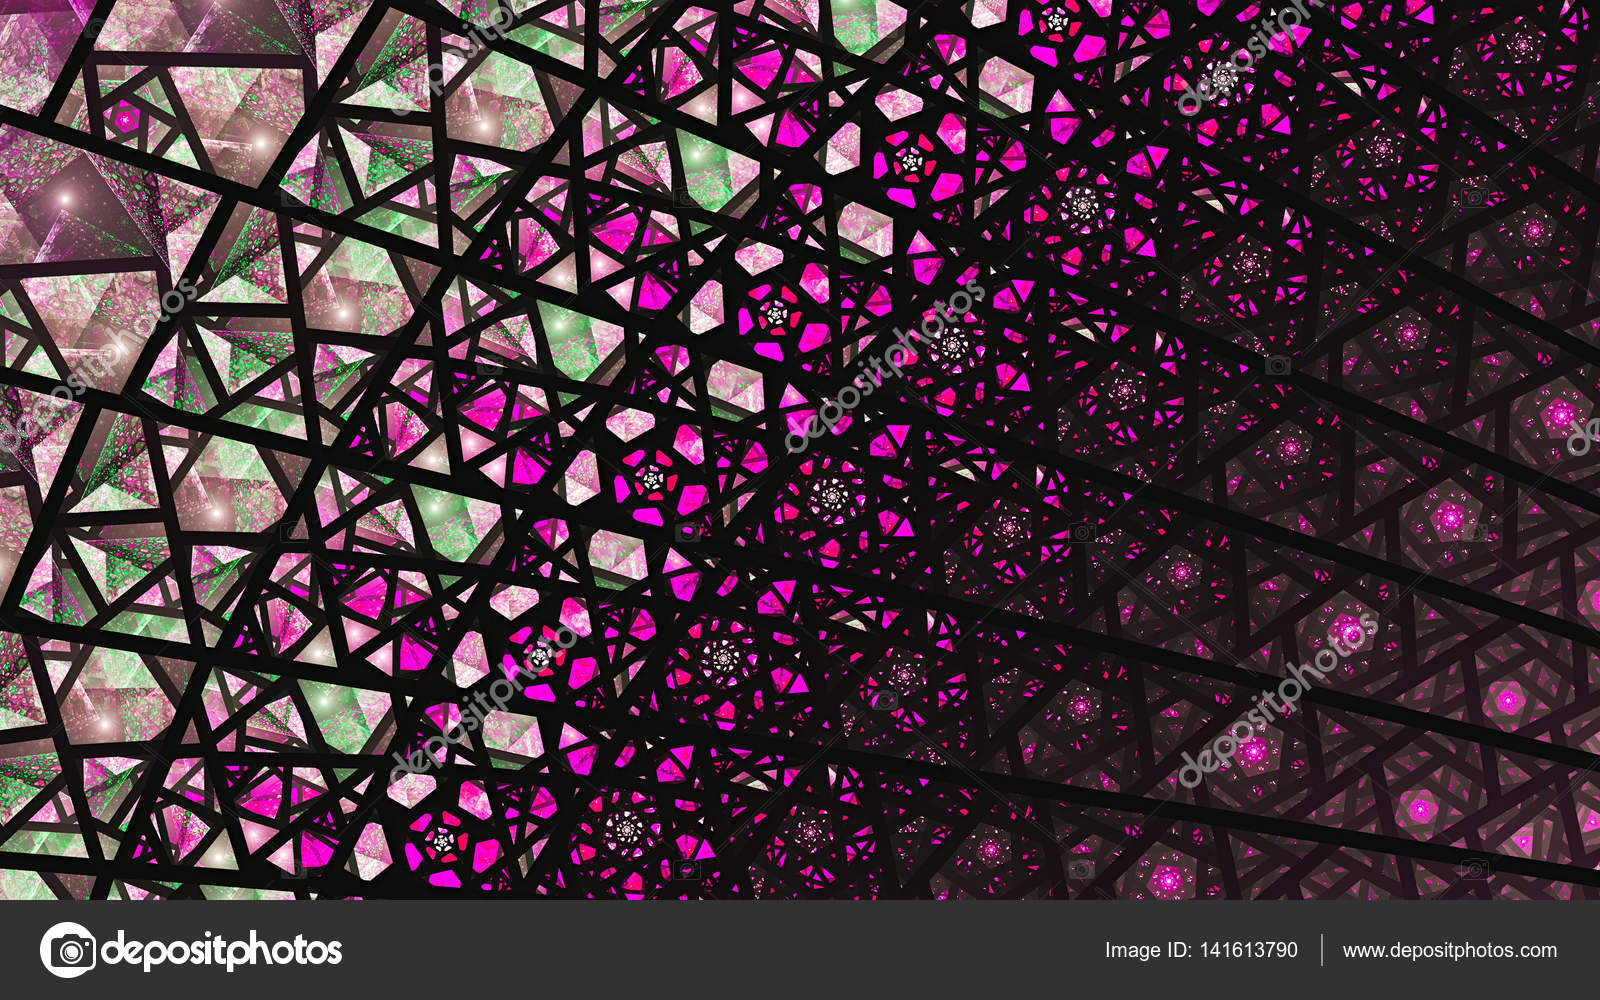 Stained Glass Windows Colored Shards Fragments 3D Surreal Illustration Sacred Geometry Mysterious Psychedelic Relaxation Pattern